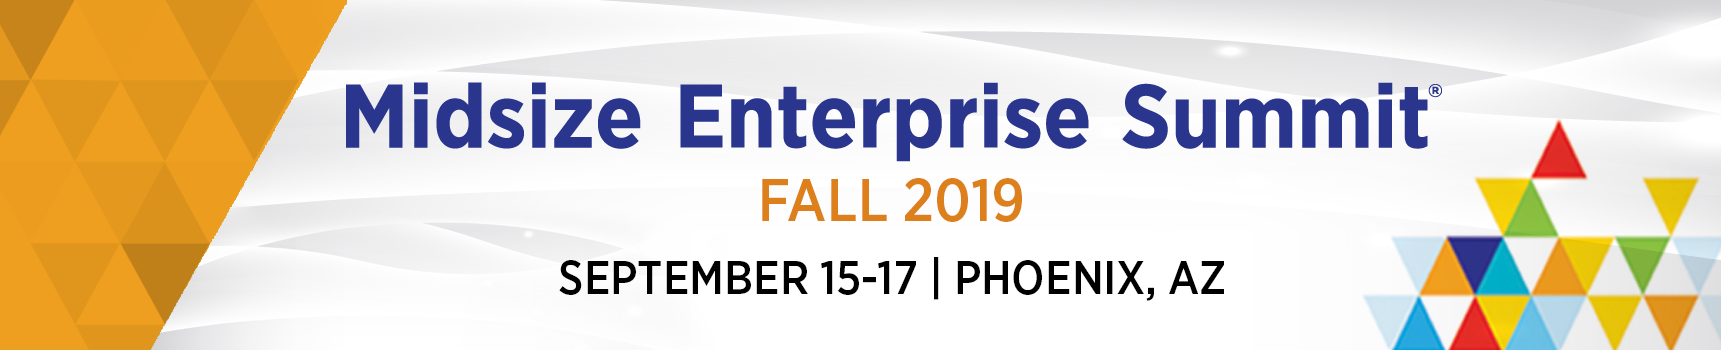 Midsize Enterprise Summit Fall 2019